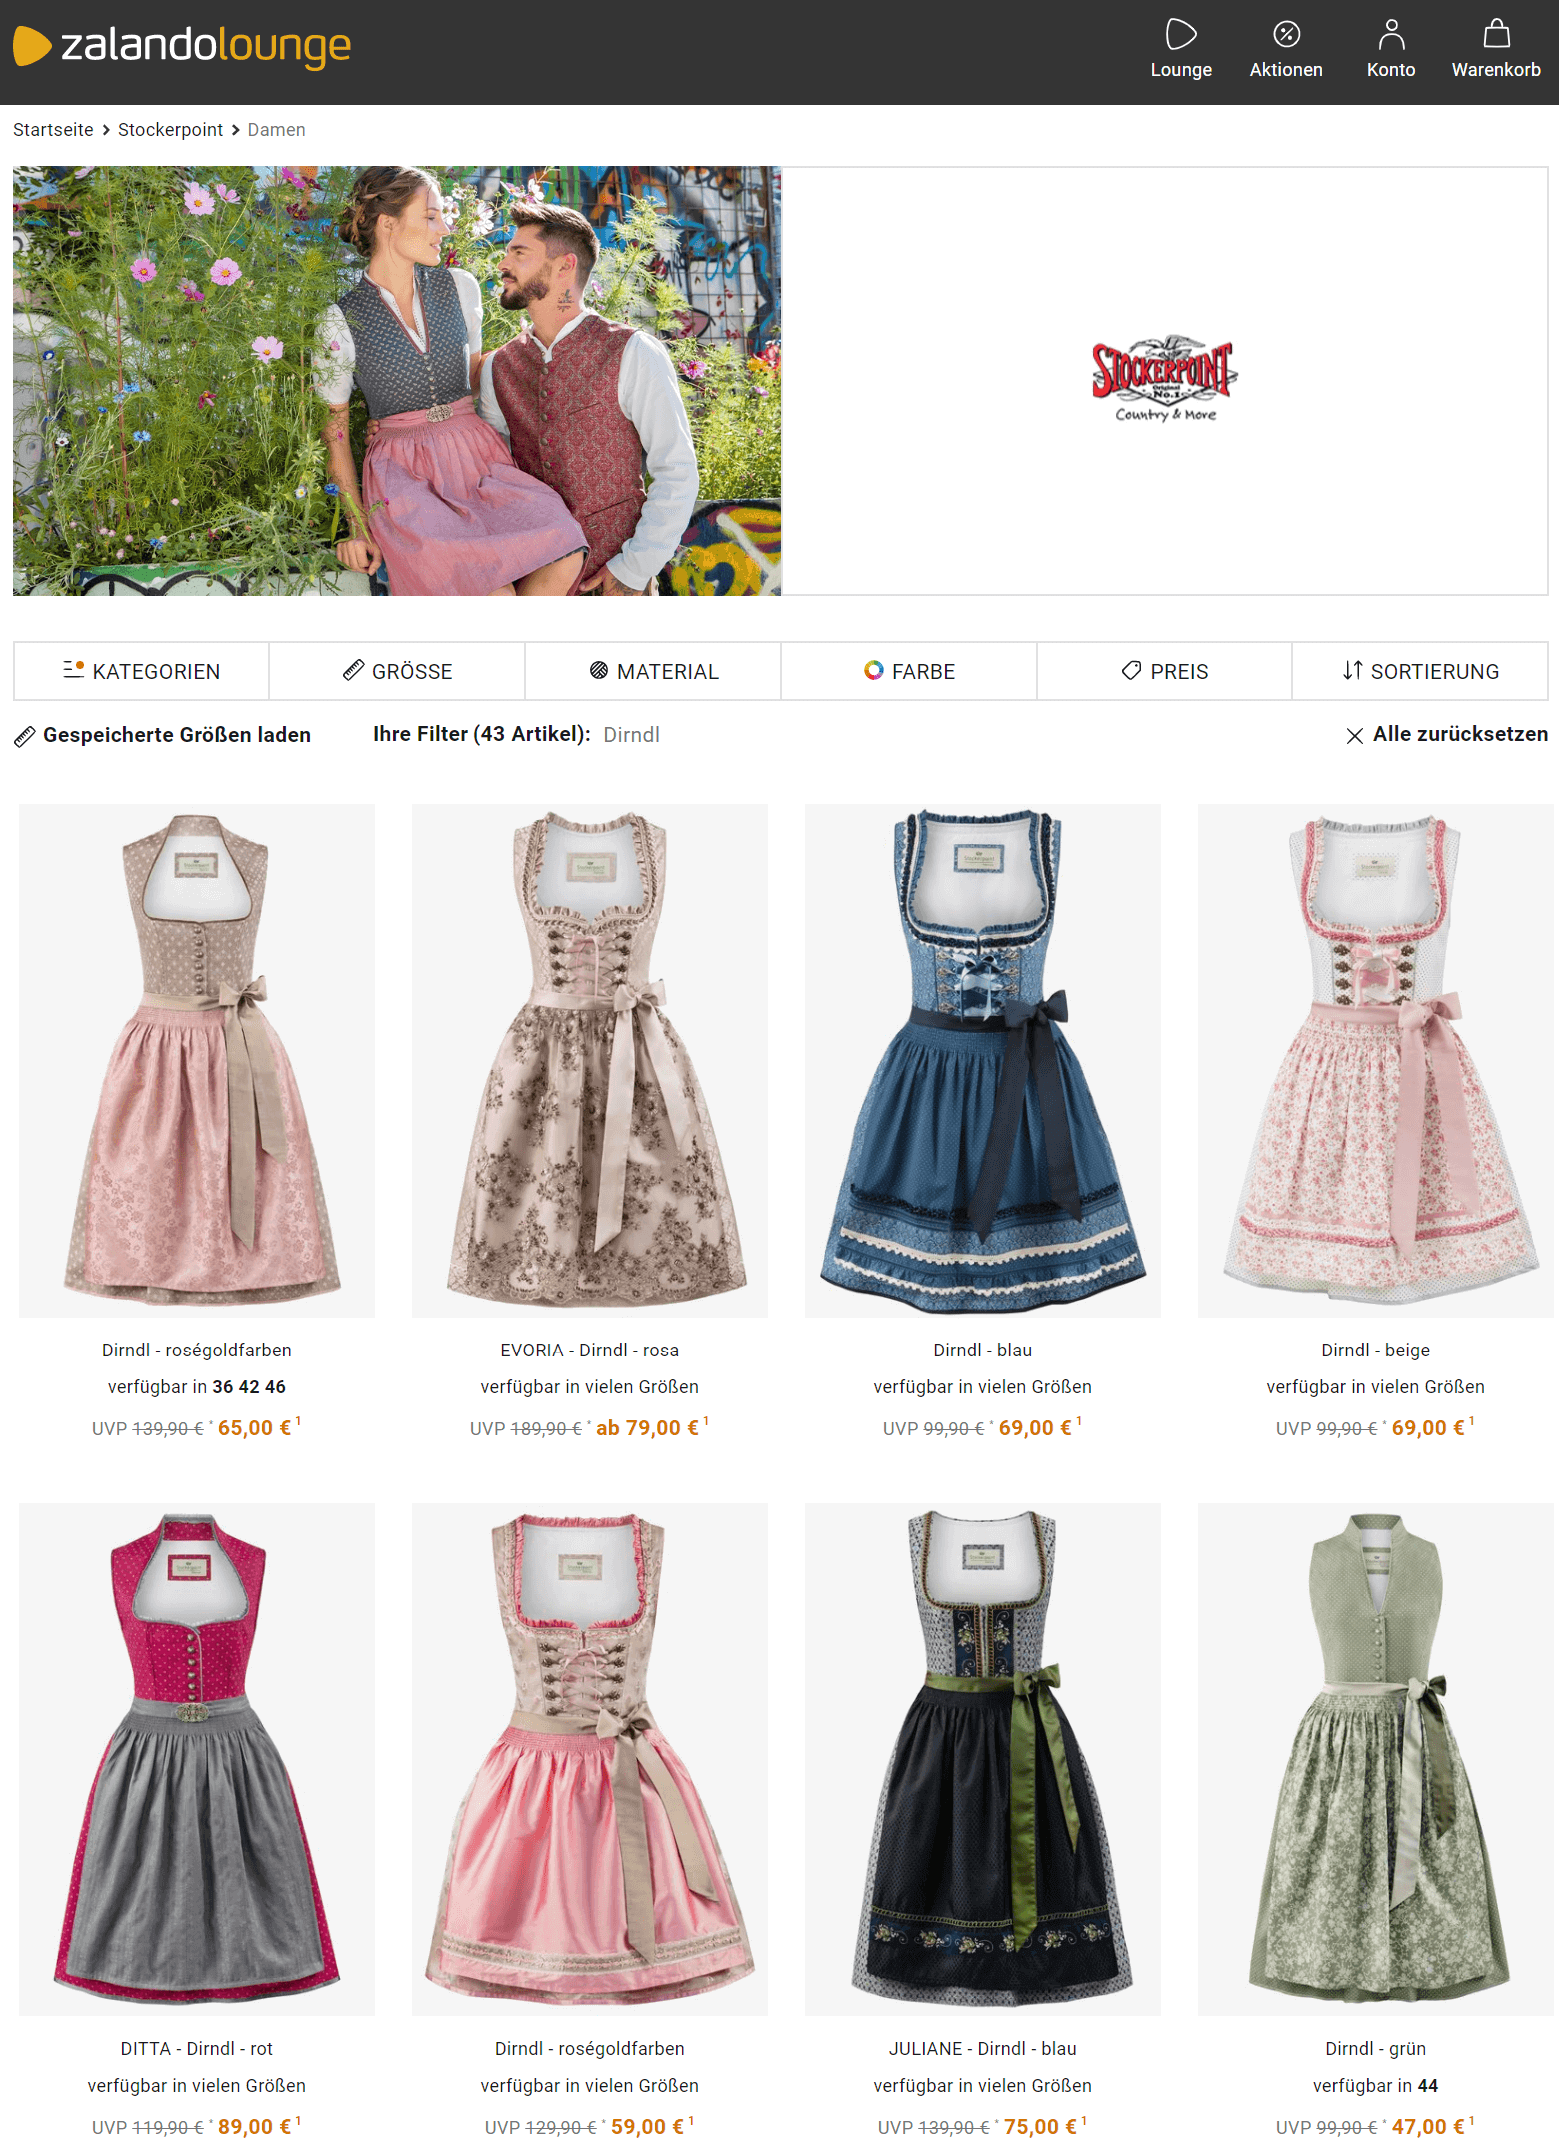 Dirndl outlet zalando lounge